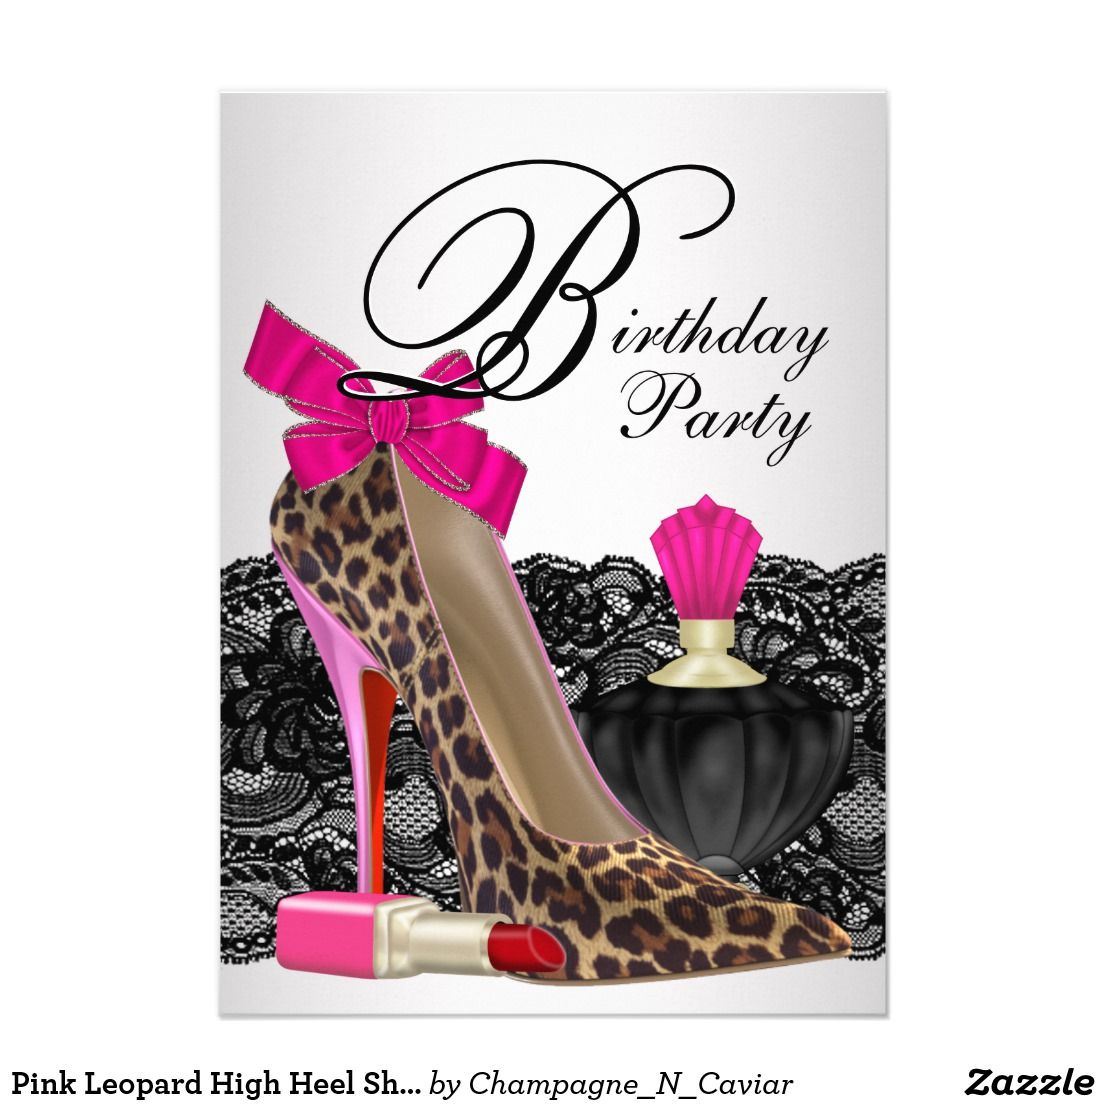 Pink Leopard High Heel Shoe Girly Birthday Party Card | Leopard ...